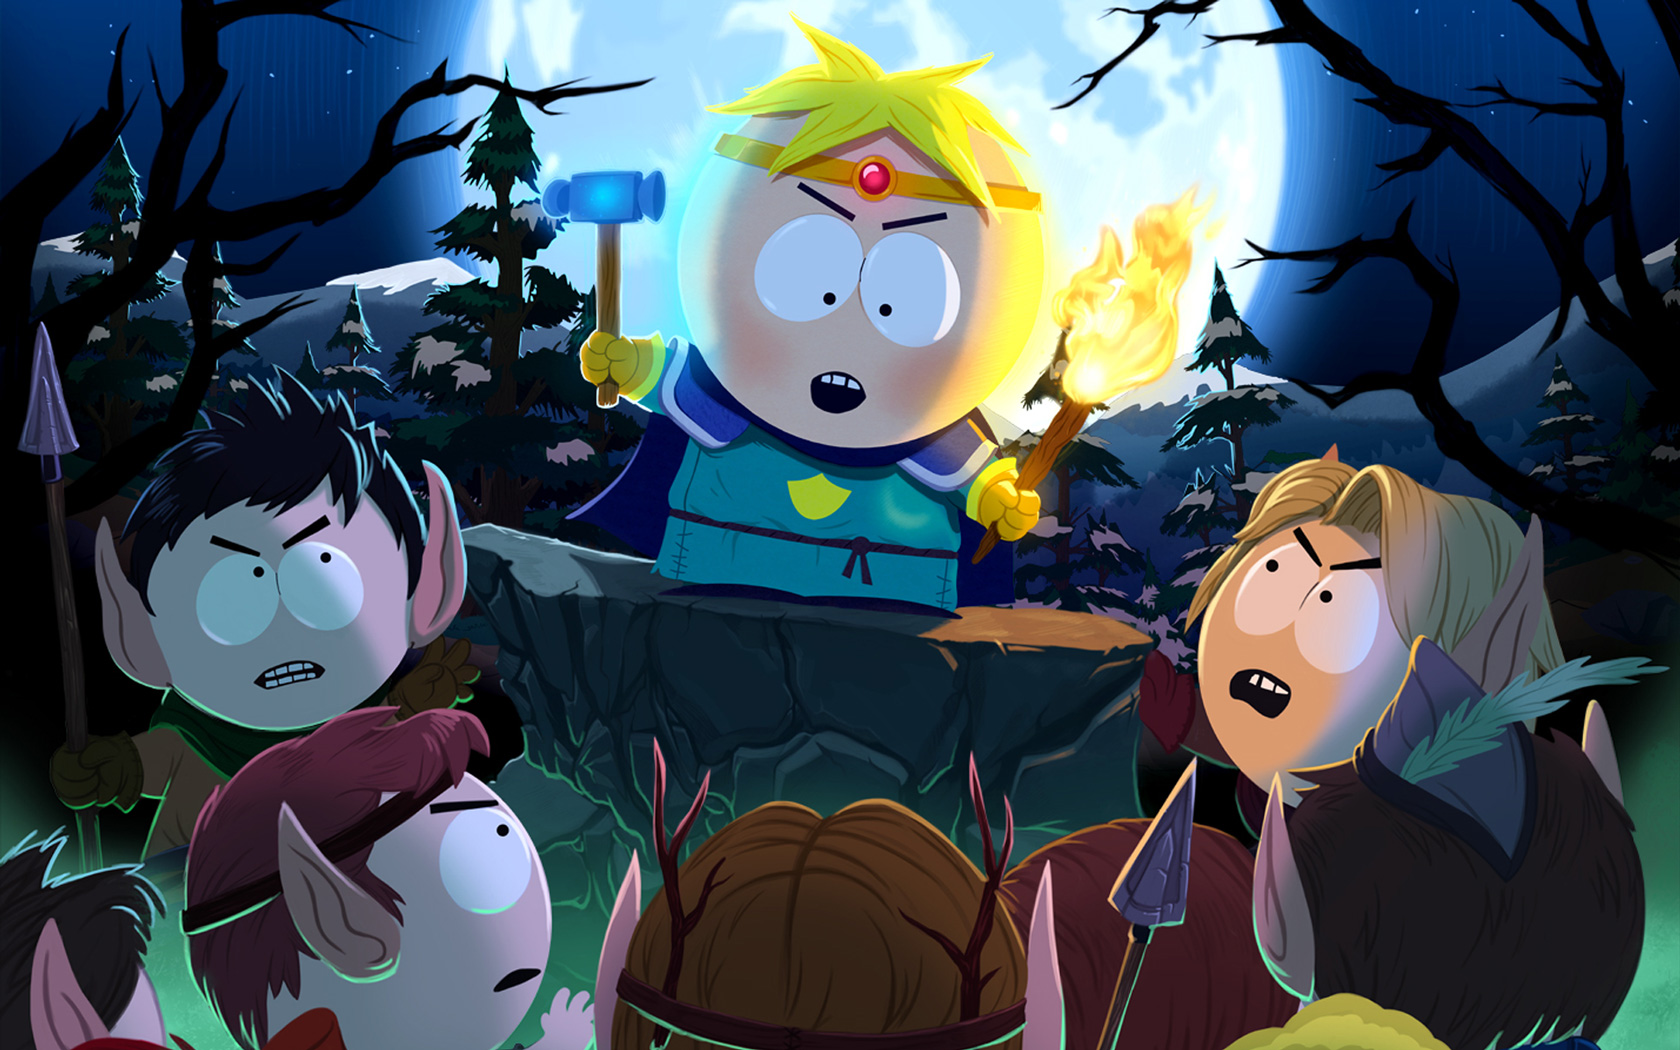 South Park: The Stick of Truth Wallpaper in 1680x1050